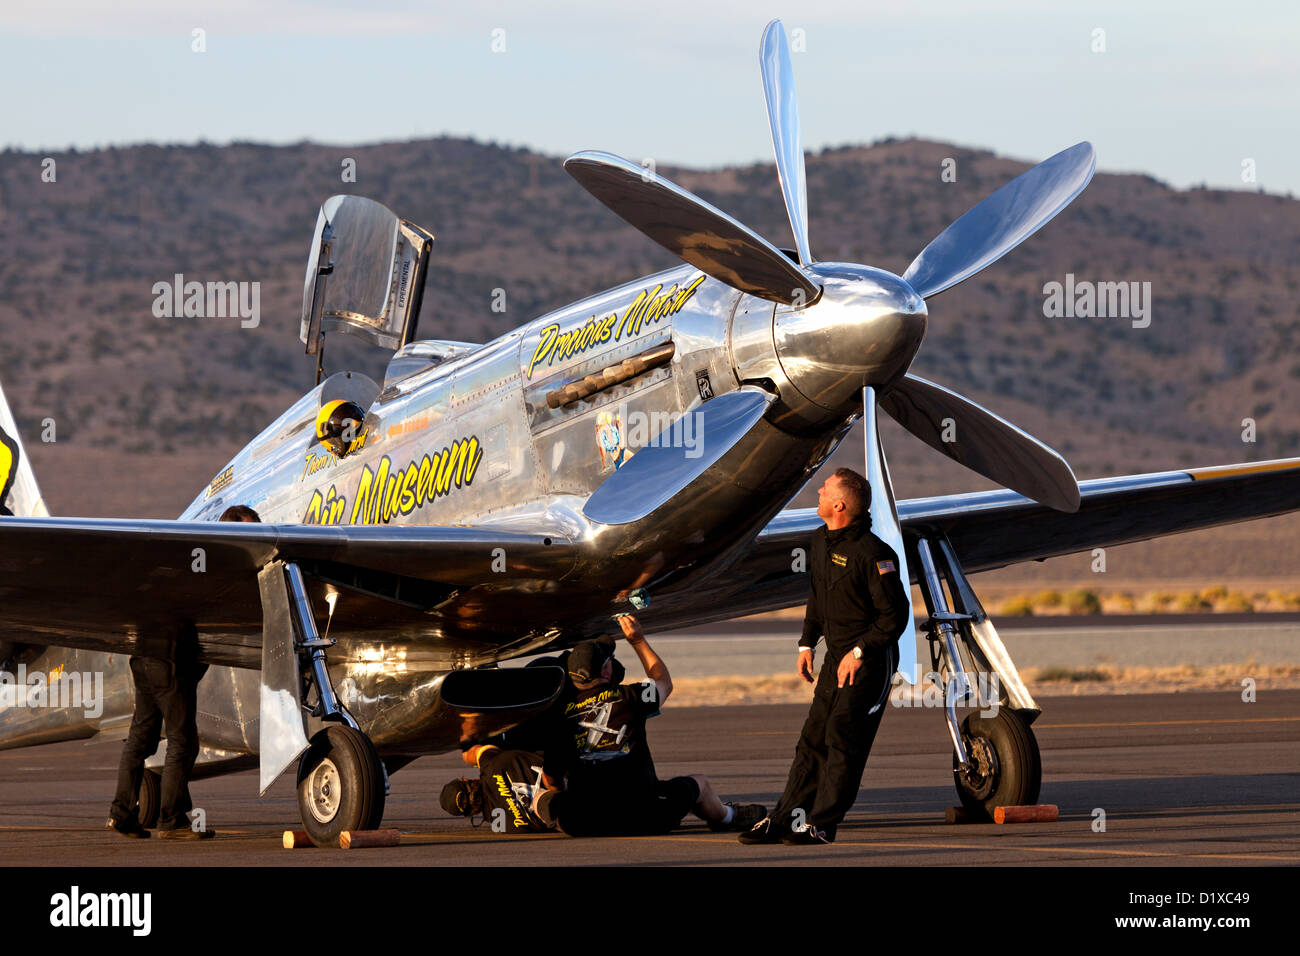 The Precious Metal crew tend to the P-51 Mustang Unlimited Air Racer during the 2012 Reno National Championship - Stock Image